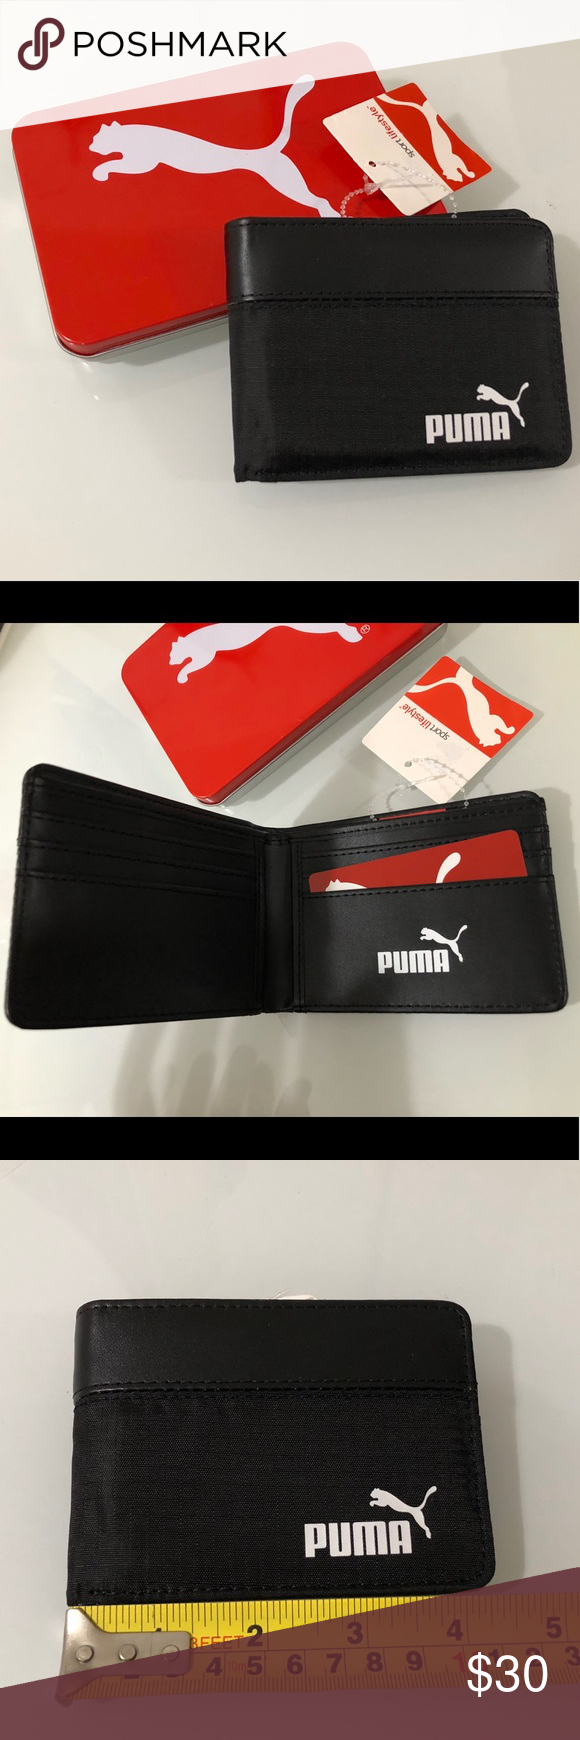 Puma Sport Lifestyle Bifold Men S Wallet Tags On Great Guy See Photos For Measurements Puma Bags Wallets Clothes Design Fashion Tips Fashion Design